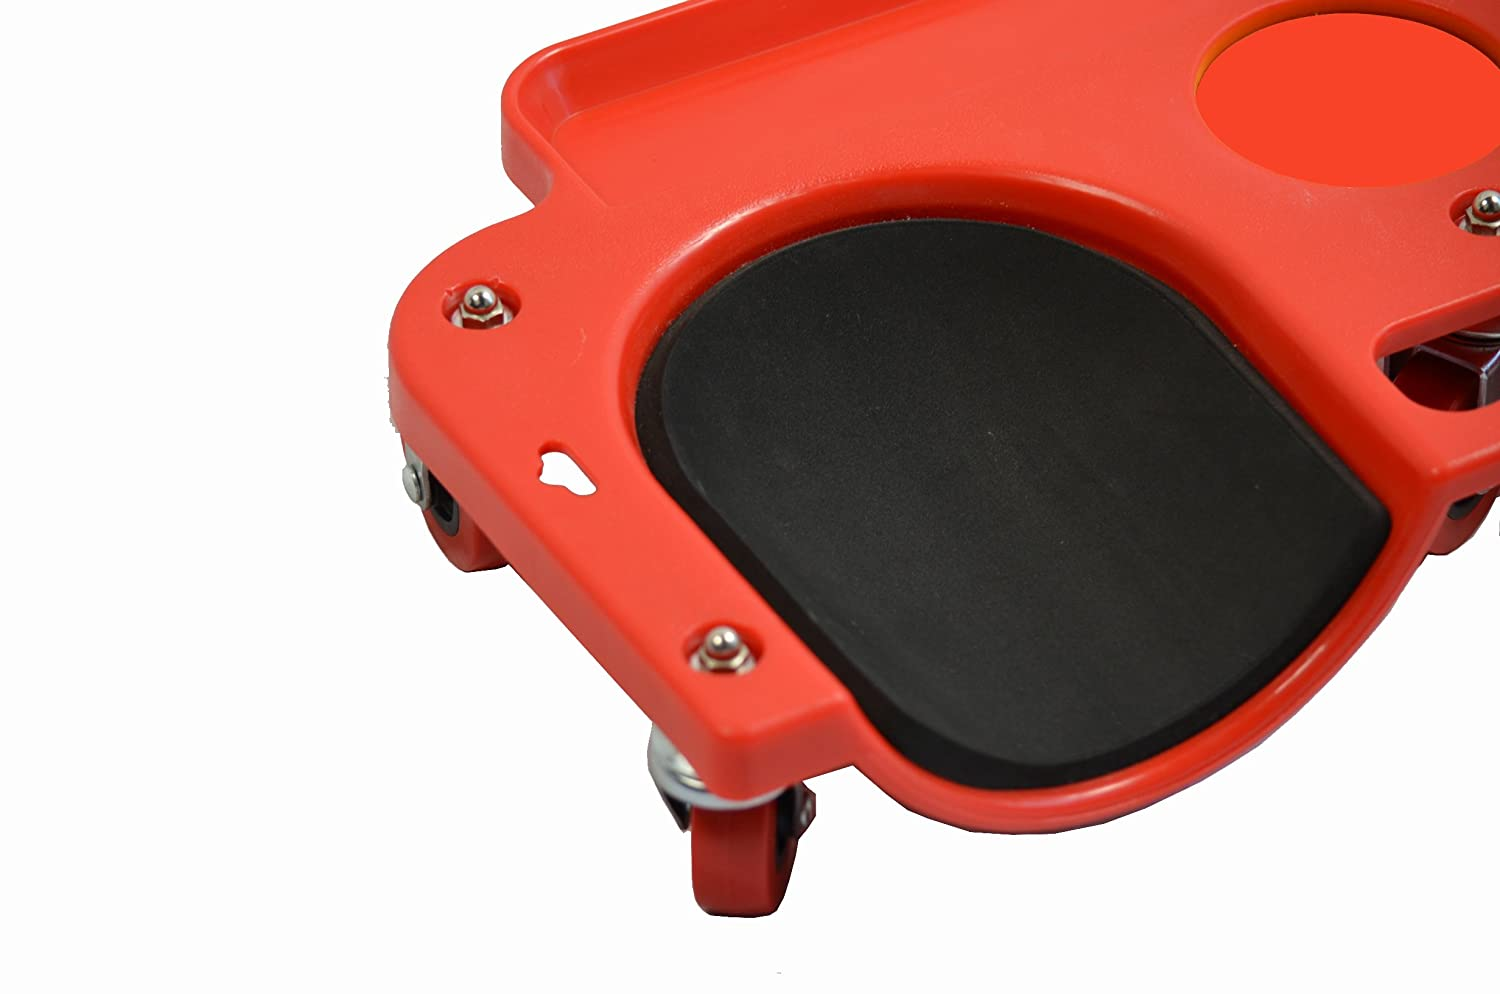 5 Swivel Castors MaxxHaul 80748 Rolling Knee Creeper//Pads with ABS High-Impact Frame Tool Tray and Holder